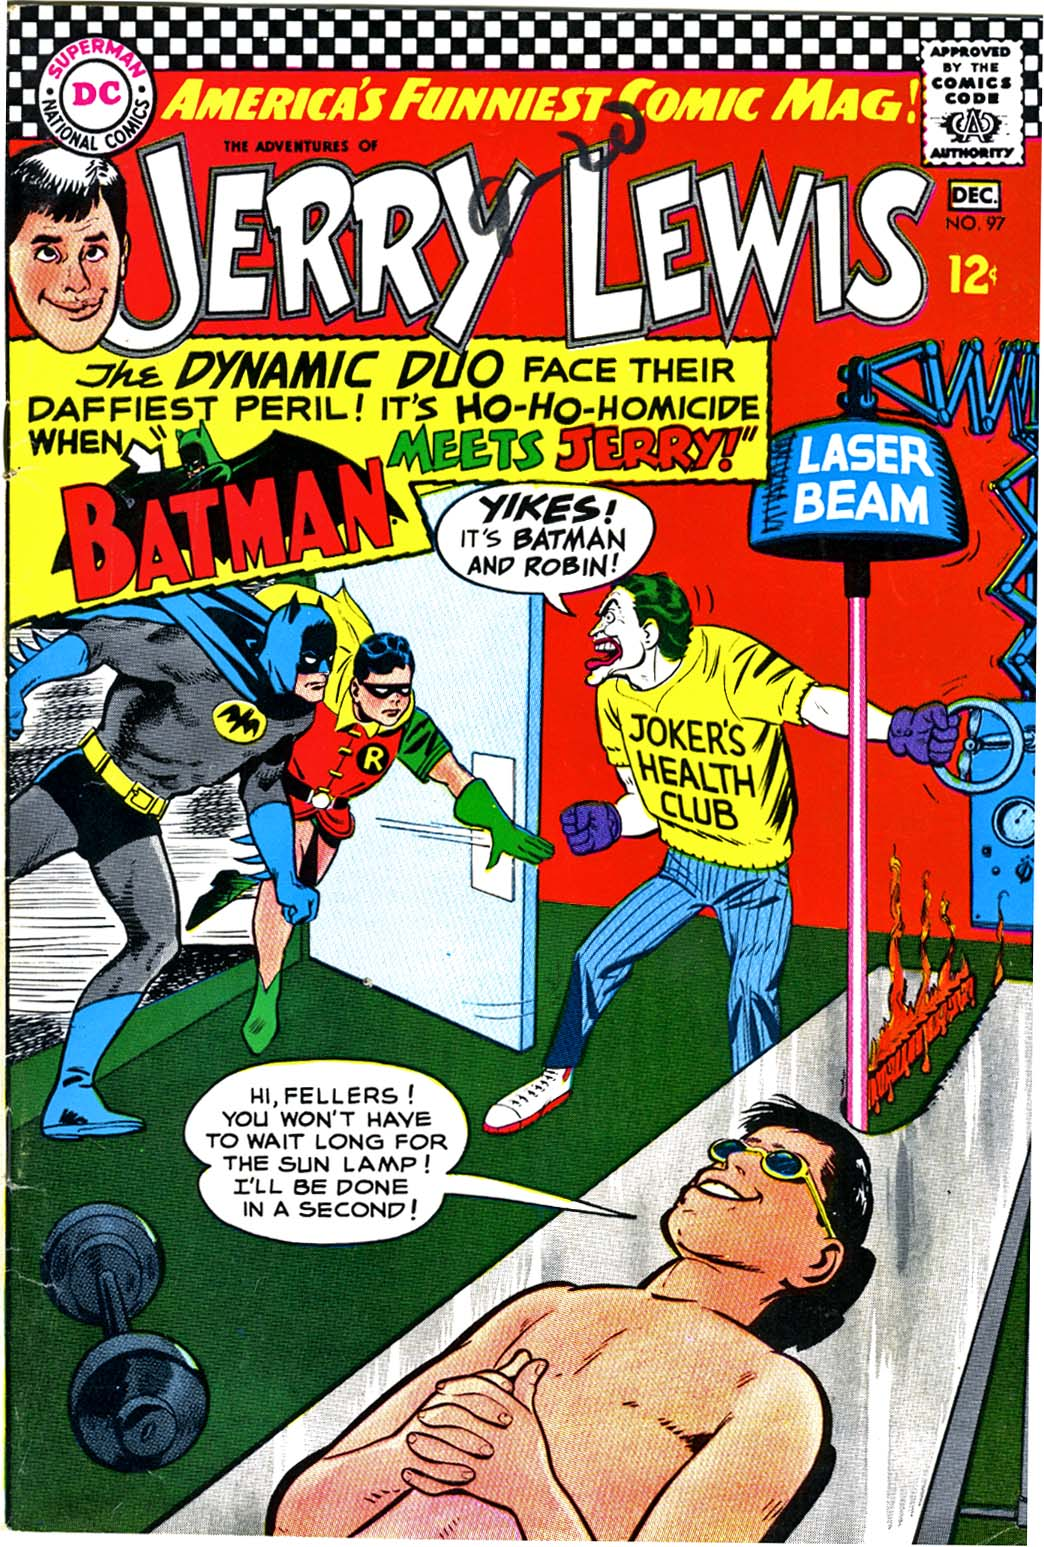 The Adventures of Jerry Lewis 97 Page 1